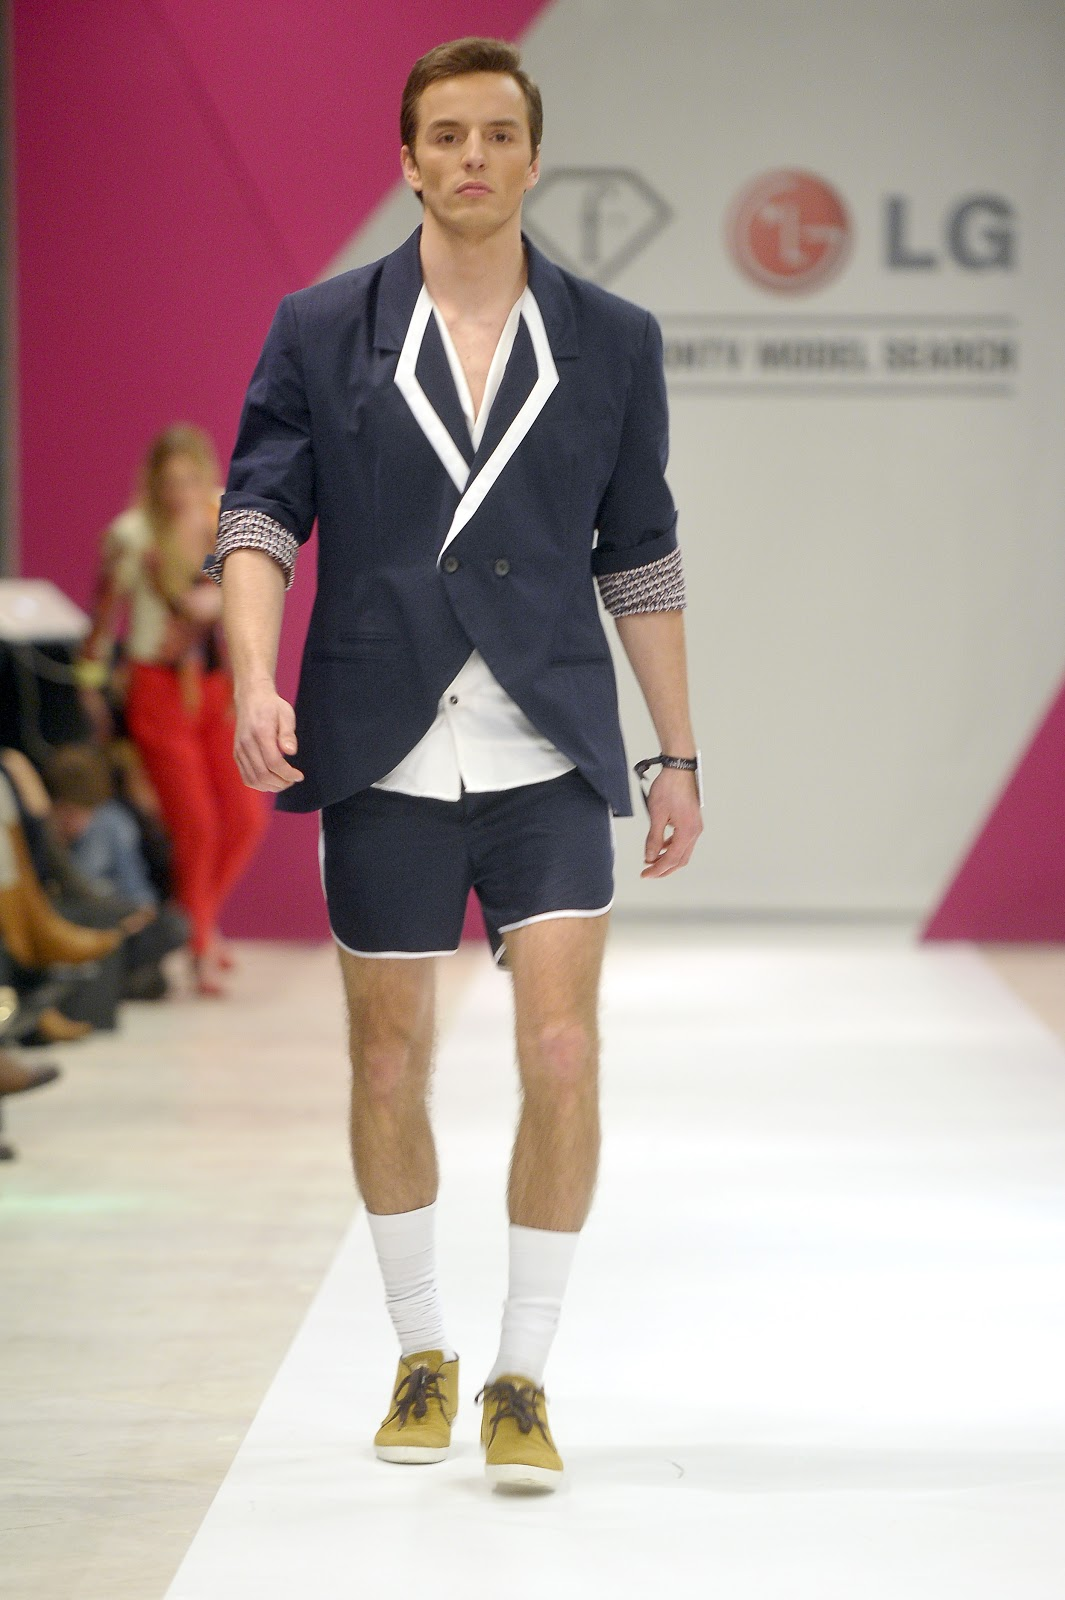 akpa20130130_lg_fashion_tv_2373.jpg